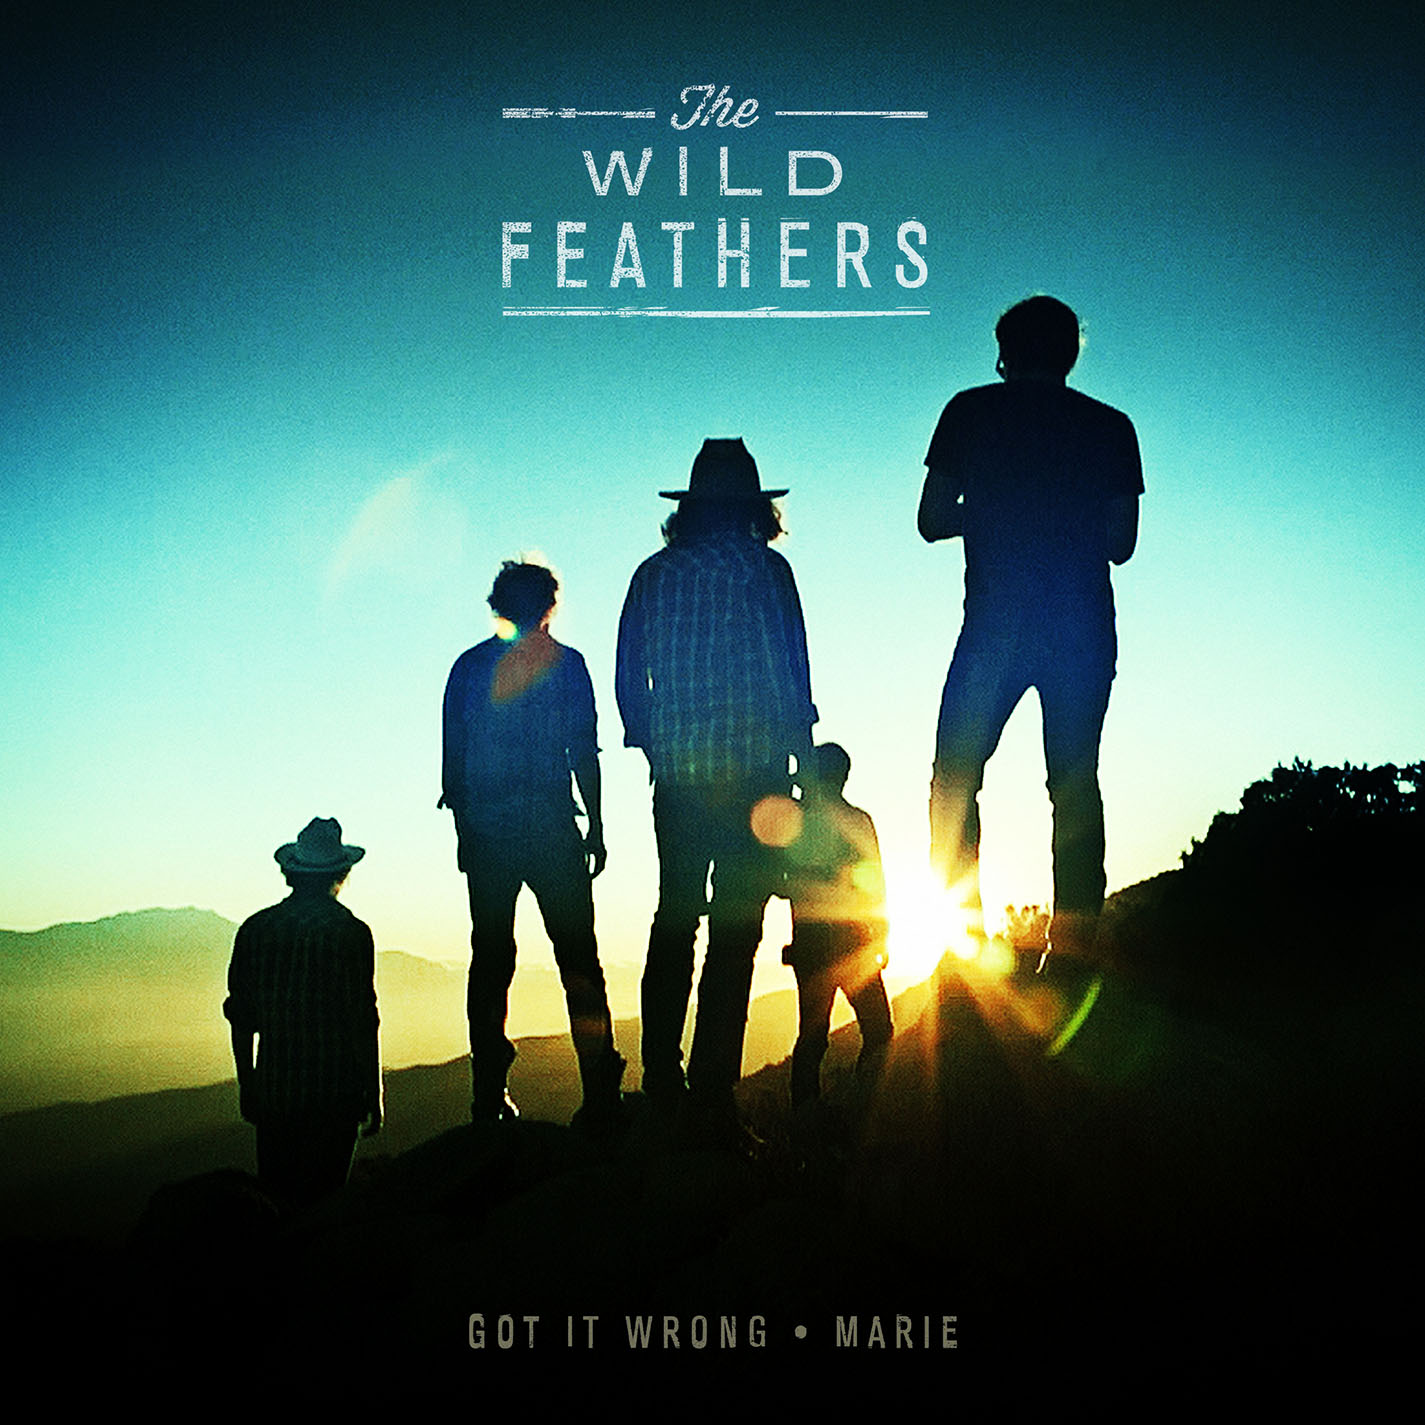 The Wild Feathers - Got It Wrong/Marie